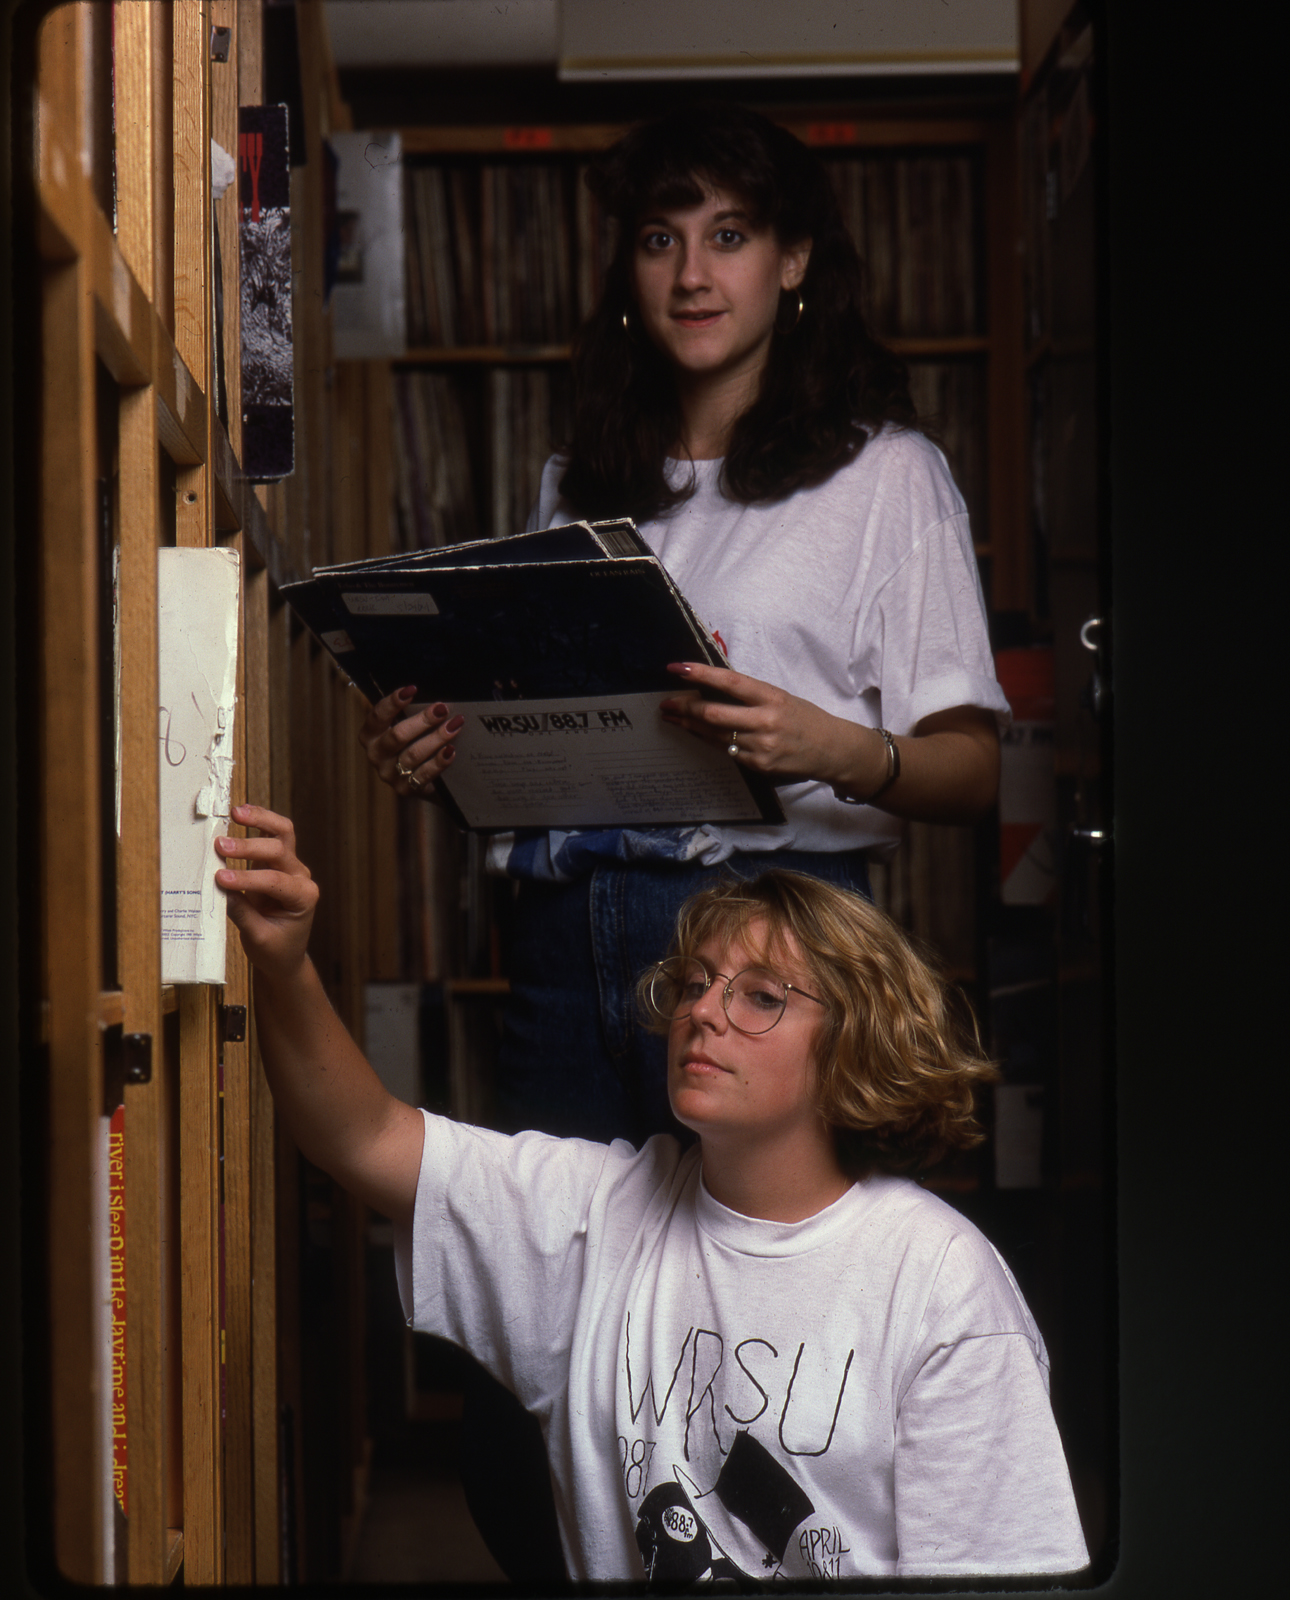 1987 Top: Debbie Agihs - Bottom: Denise Davidson in the Record Library